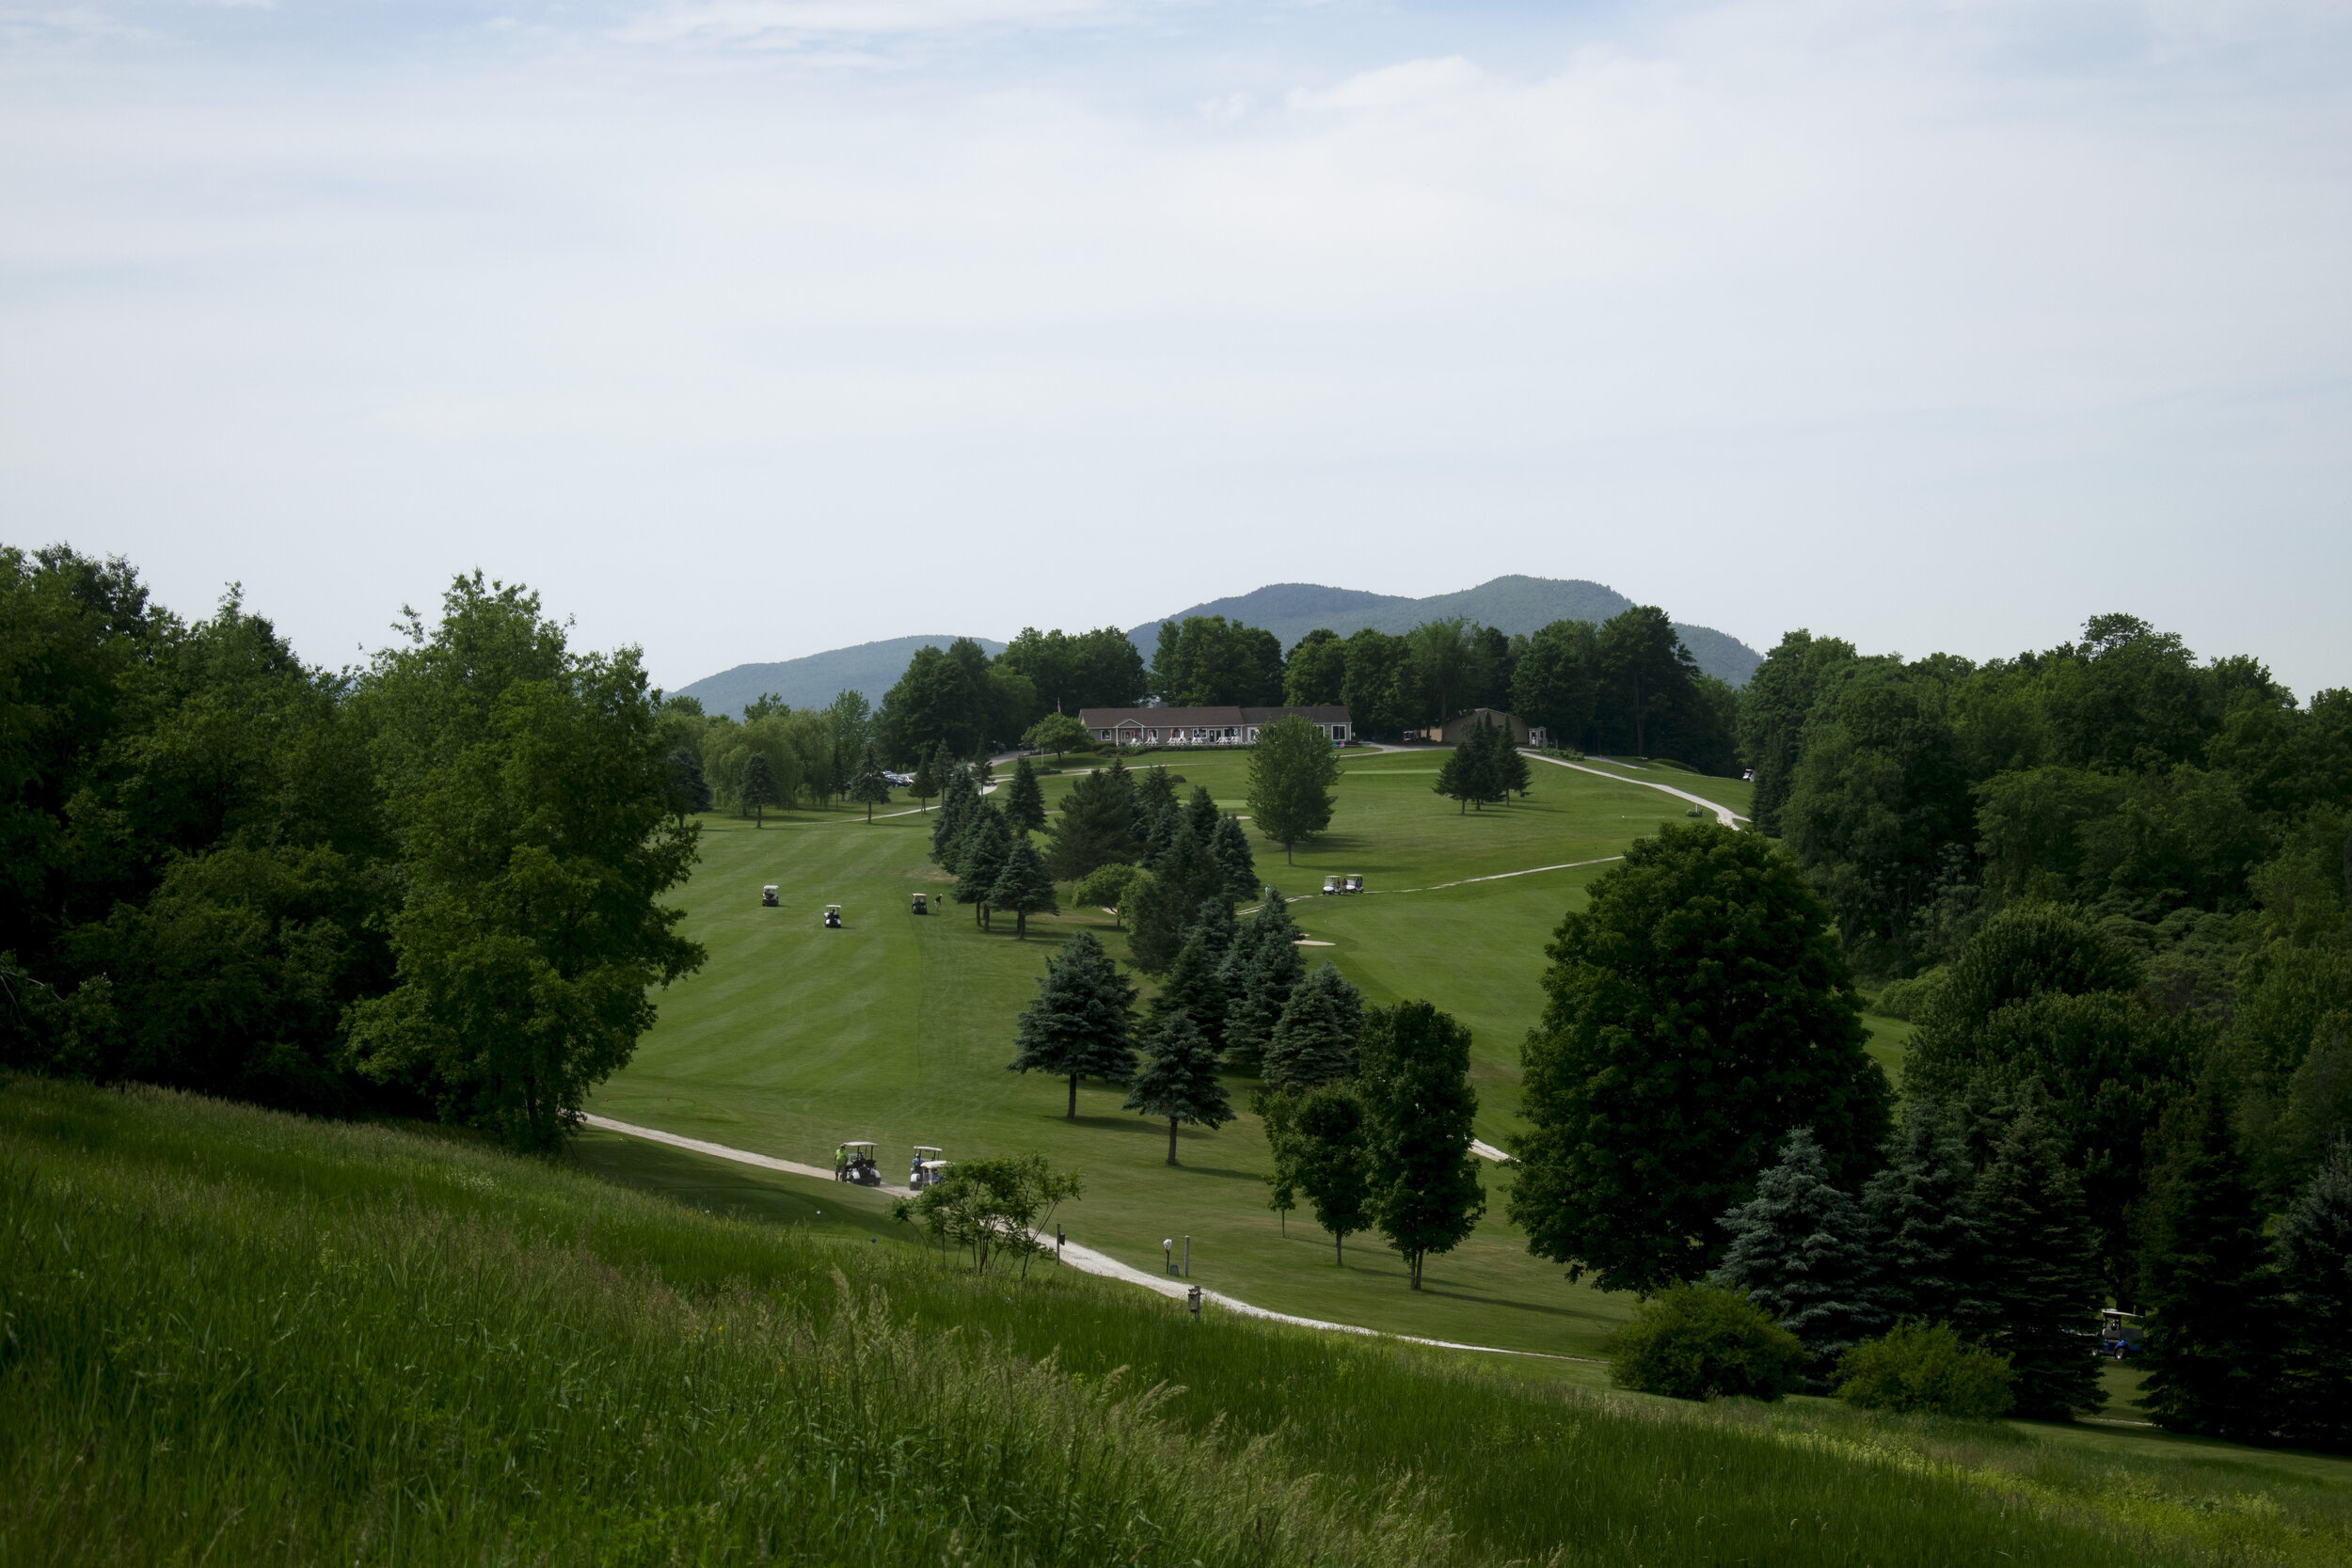 Scenic mountain views await golfers in the club house below. Photo by Olivia Nye.